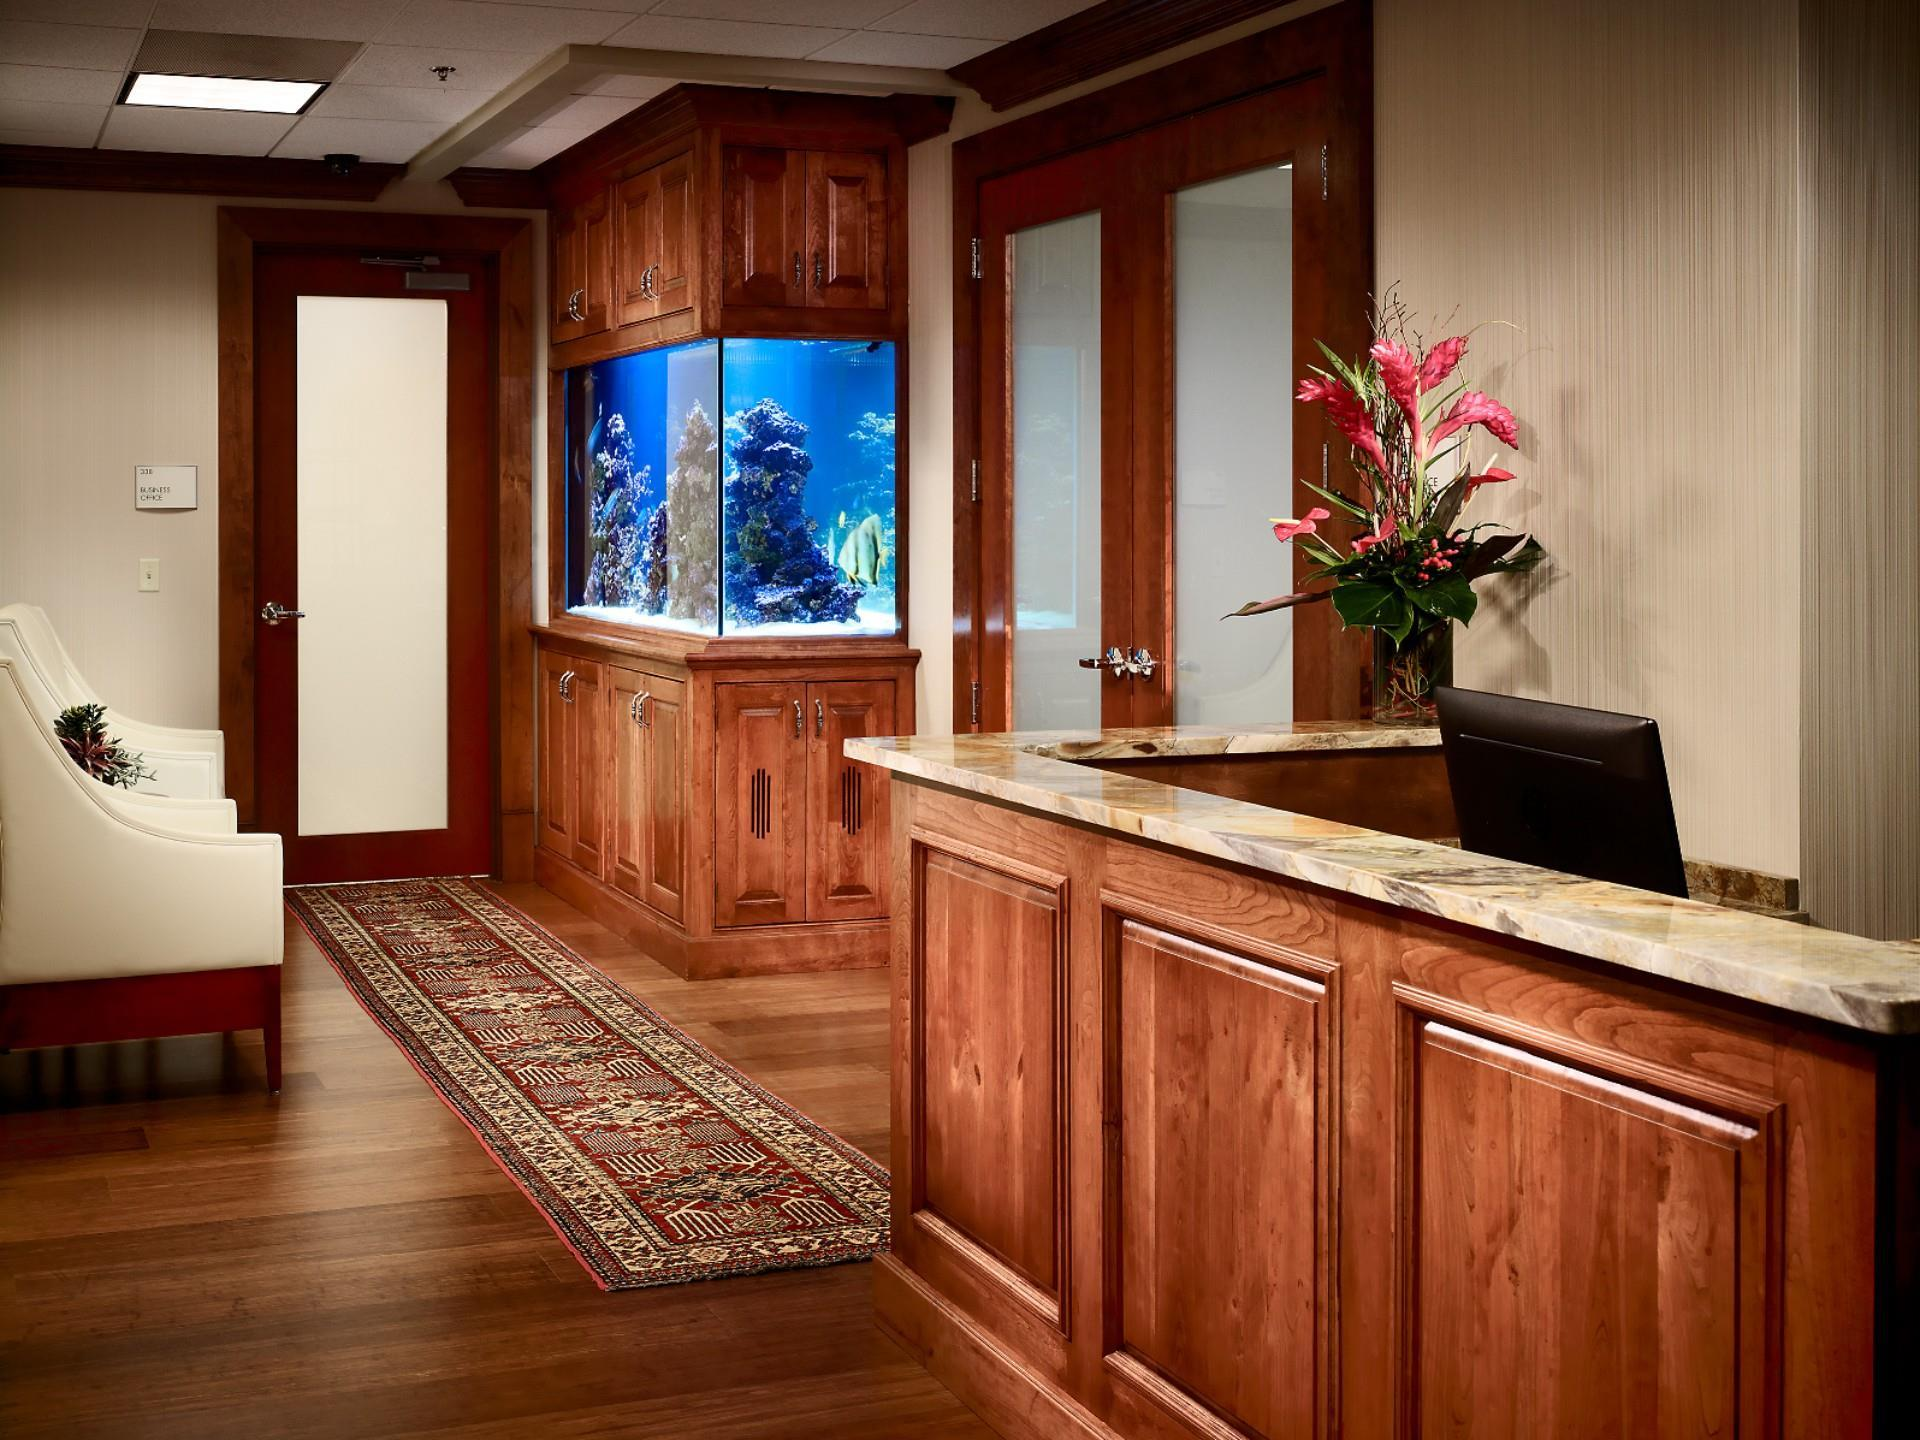 ornate entry way with wood paneled walls and desk with marble top with fish tank in wall